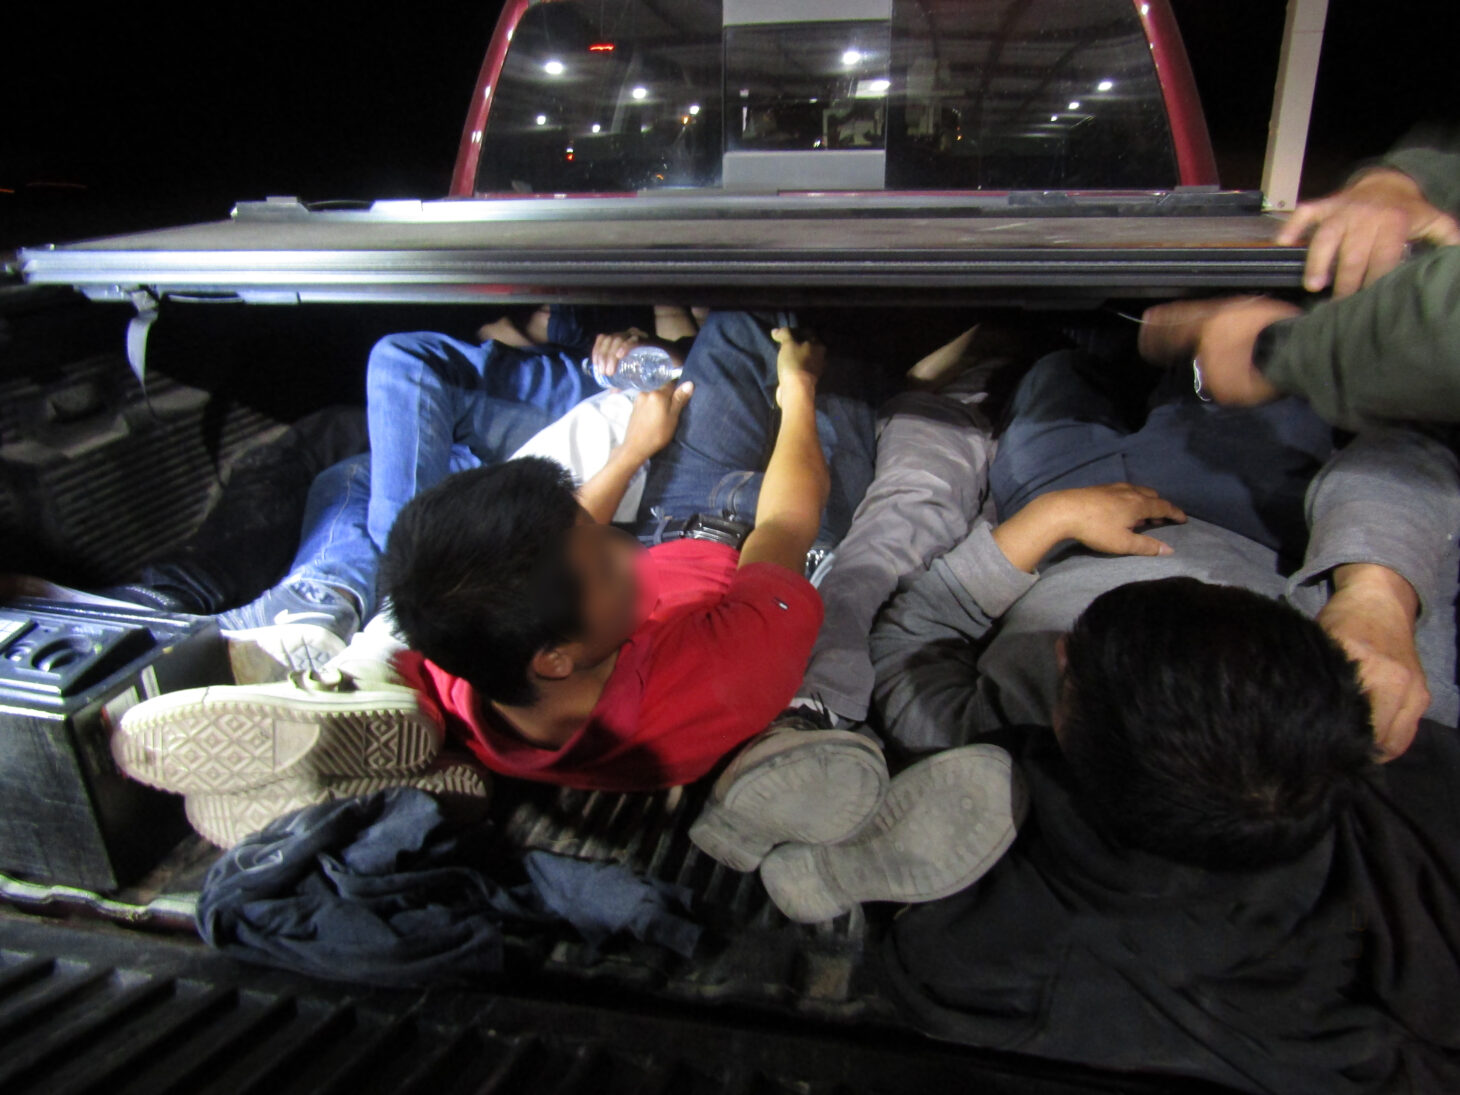 Photo courtesy U.S. Customs and Border Protection, Big Bend Sector